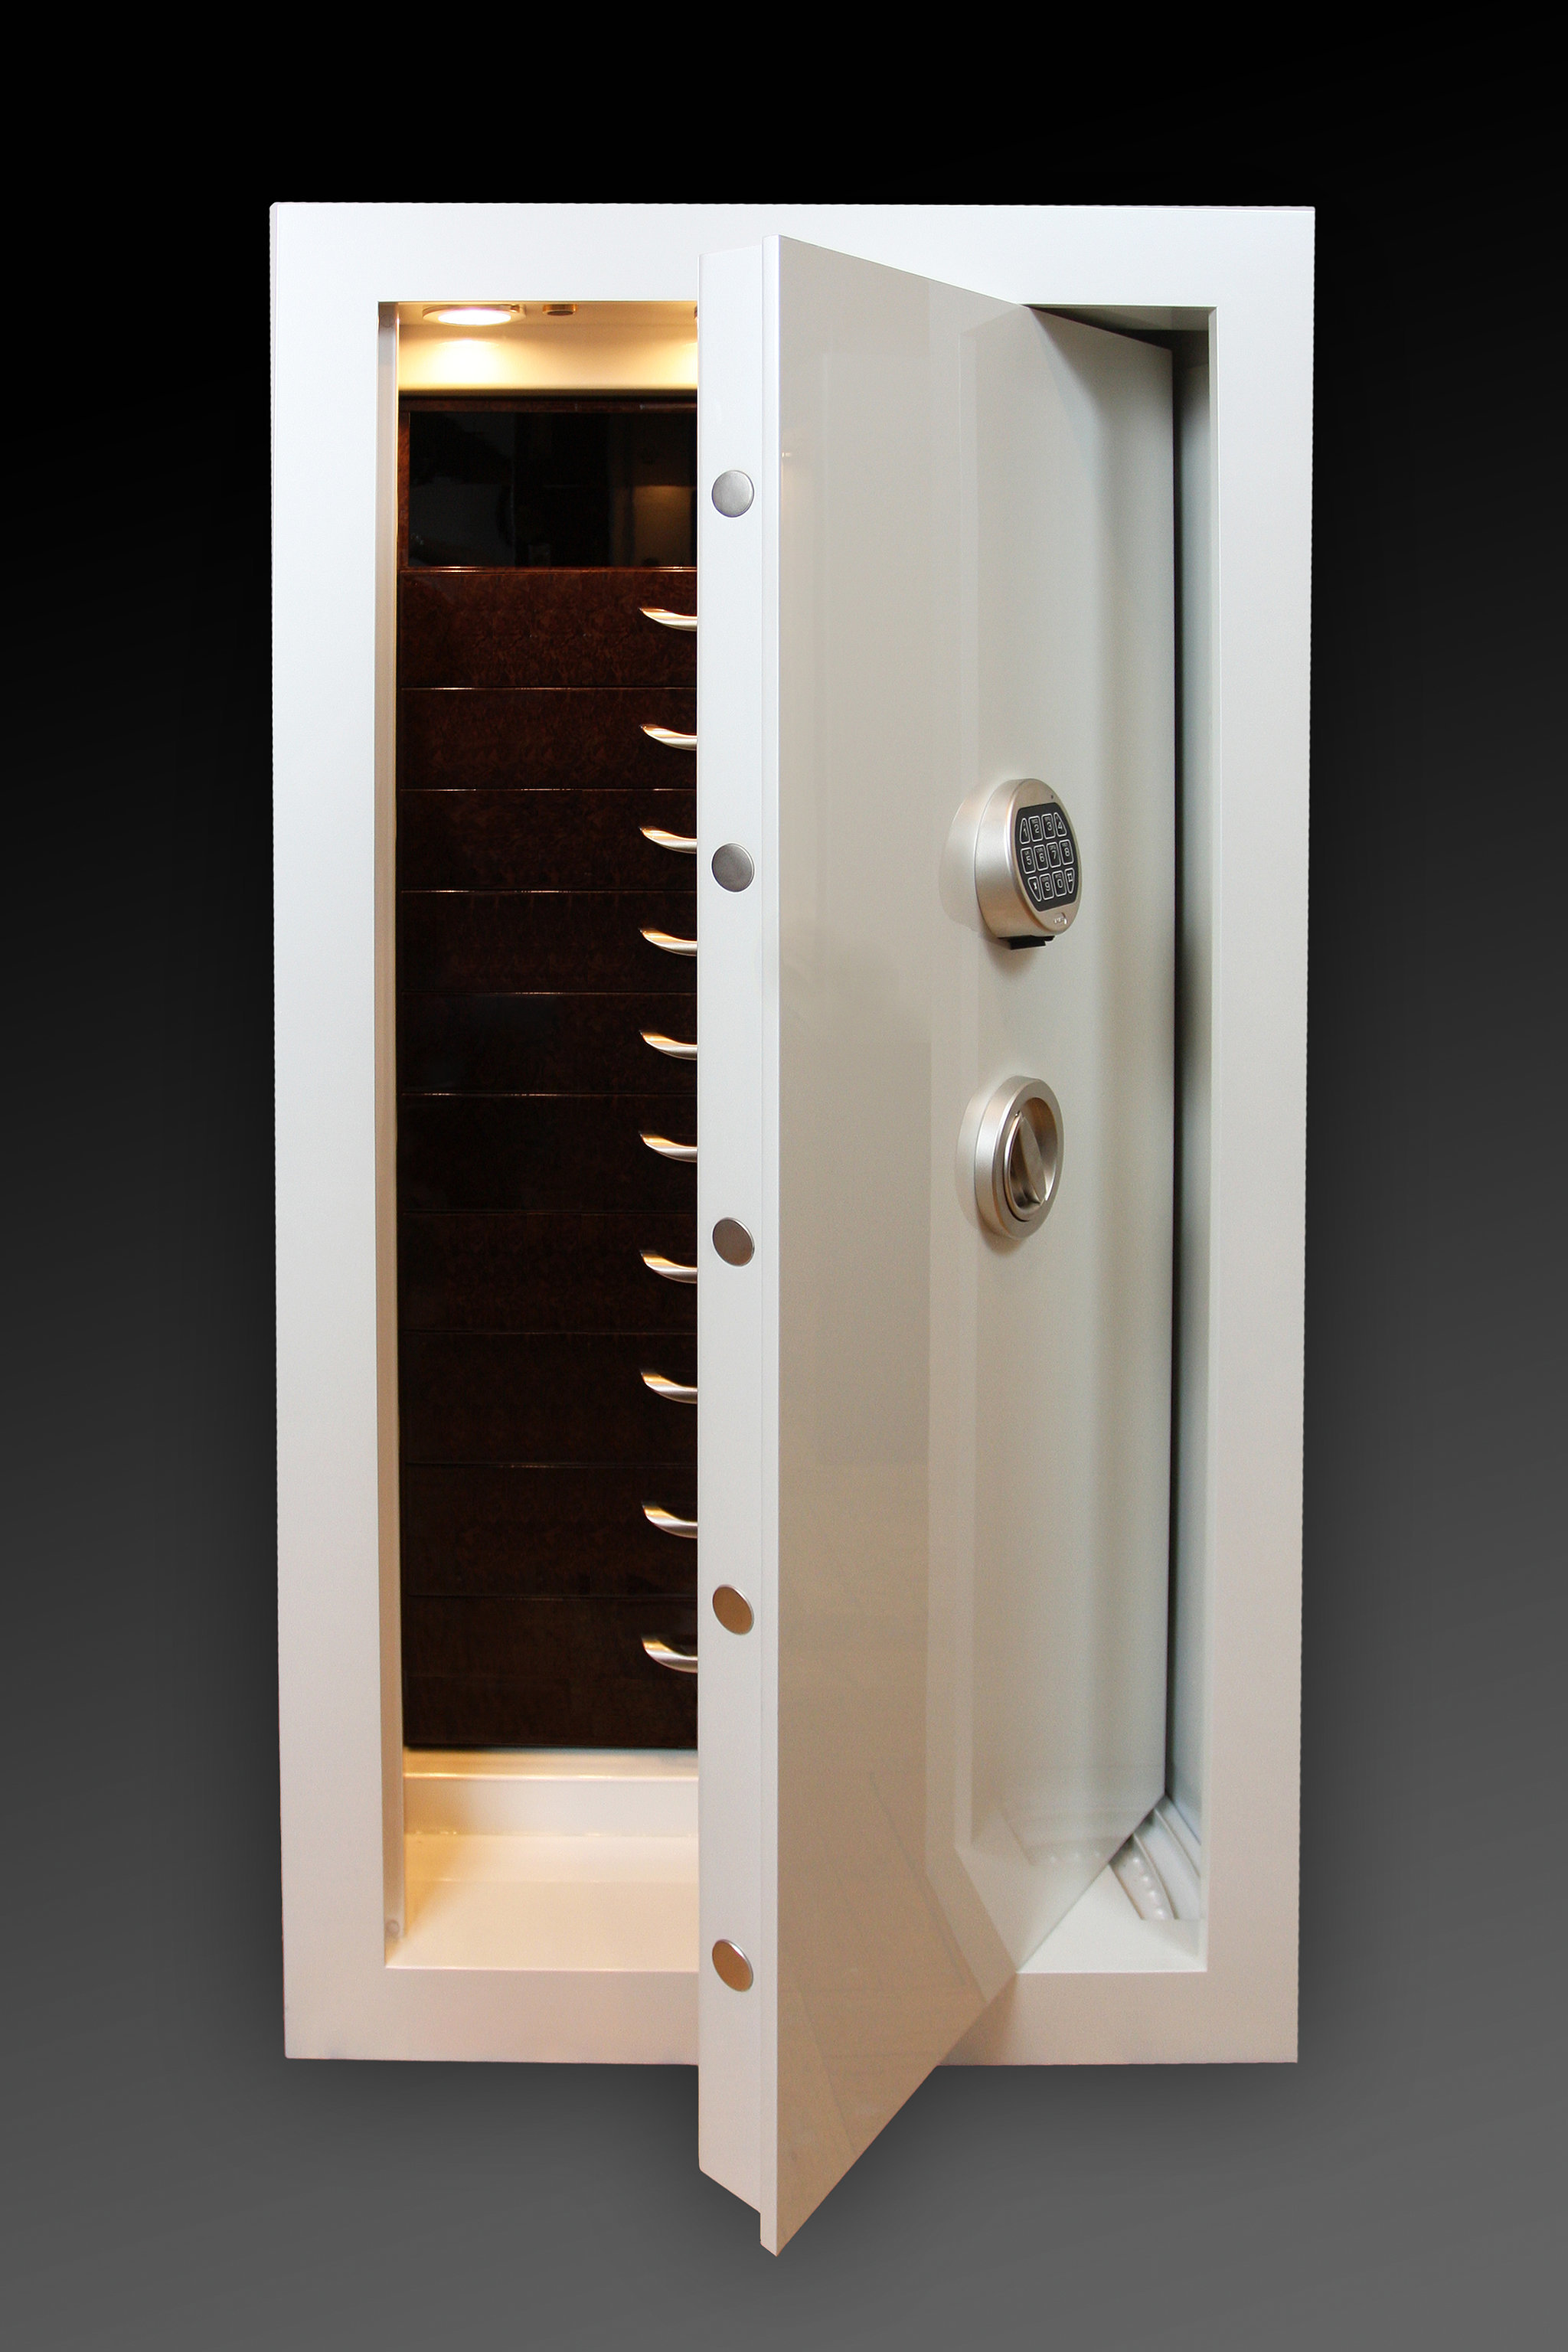 Bethenny Frankel S Closet Has A Traum Safe Popsugar Home